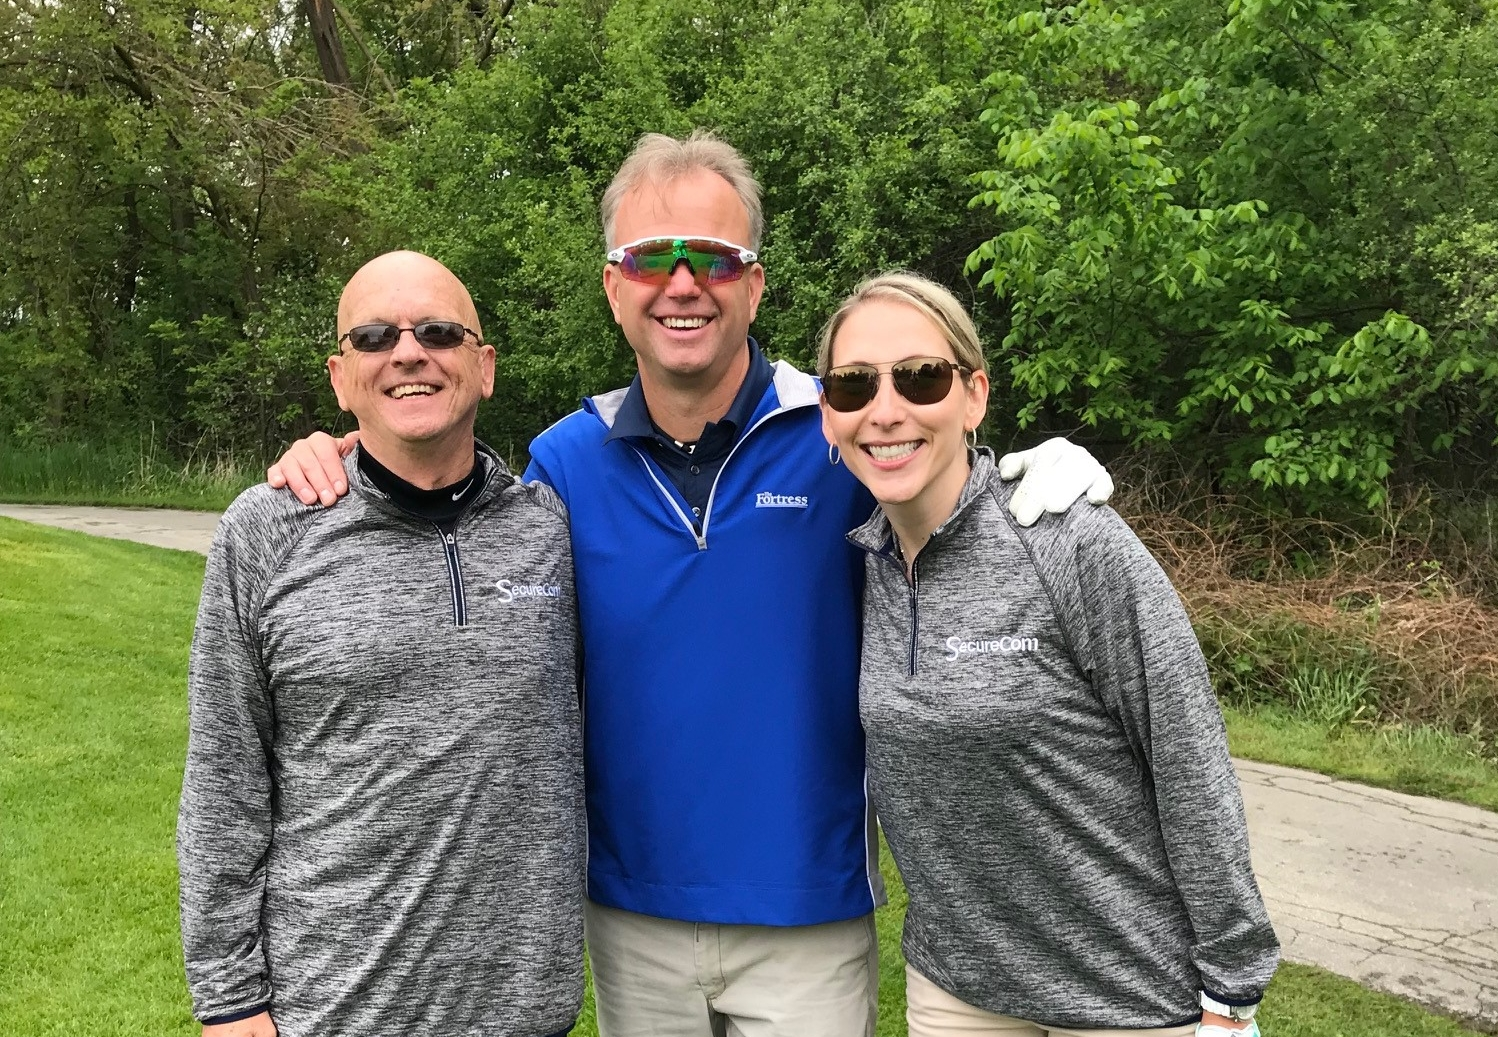 Frank Ross, Mark Wolinski, and Dallas Rau attending the 2018 Frankenmuth Chamber golf event at The Fortress in Frankenmuth.